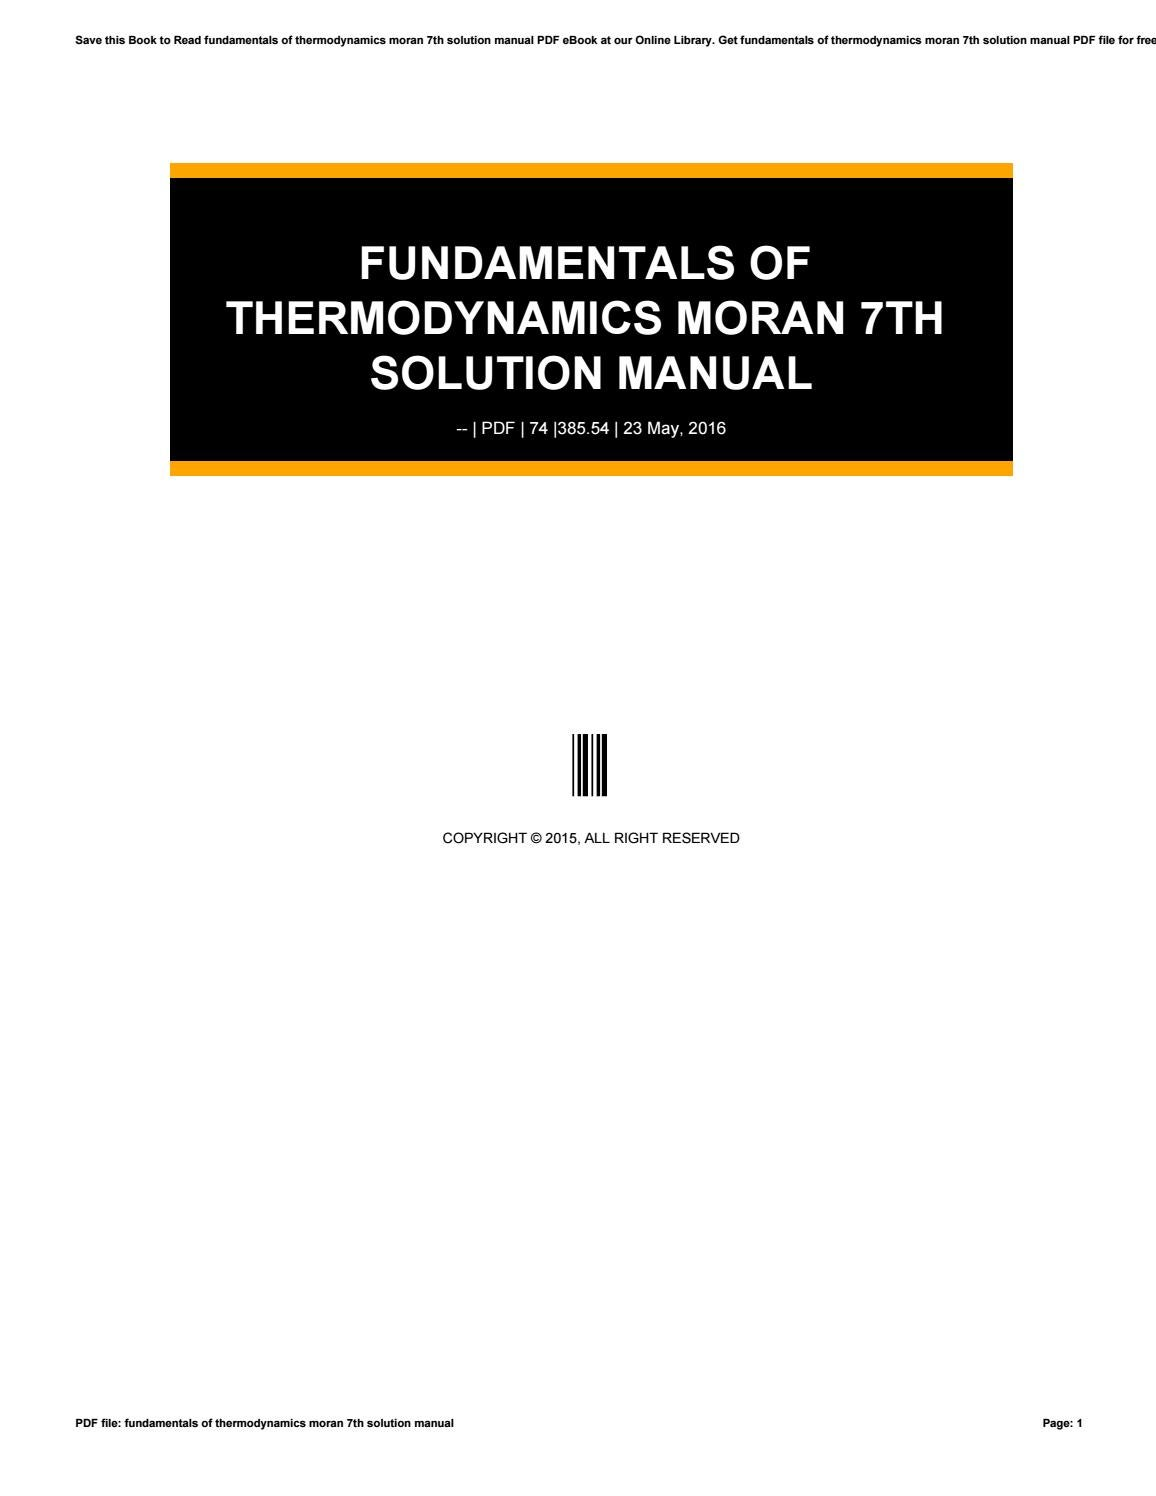 Fundamentals of thermodynamics 7th edition solution manual thermodynamics solution manual 7th edition pdf fundamentals of engineering thermodynamics 7th edition fundamentals of engineering thermodynamics fandeluxe Gallery